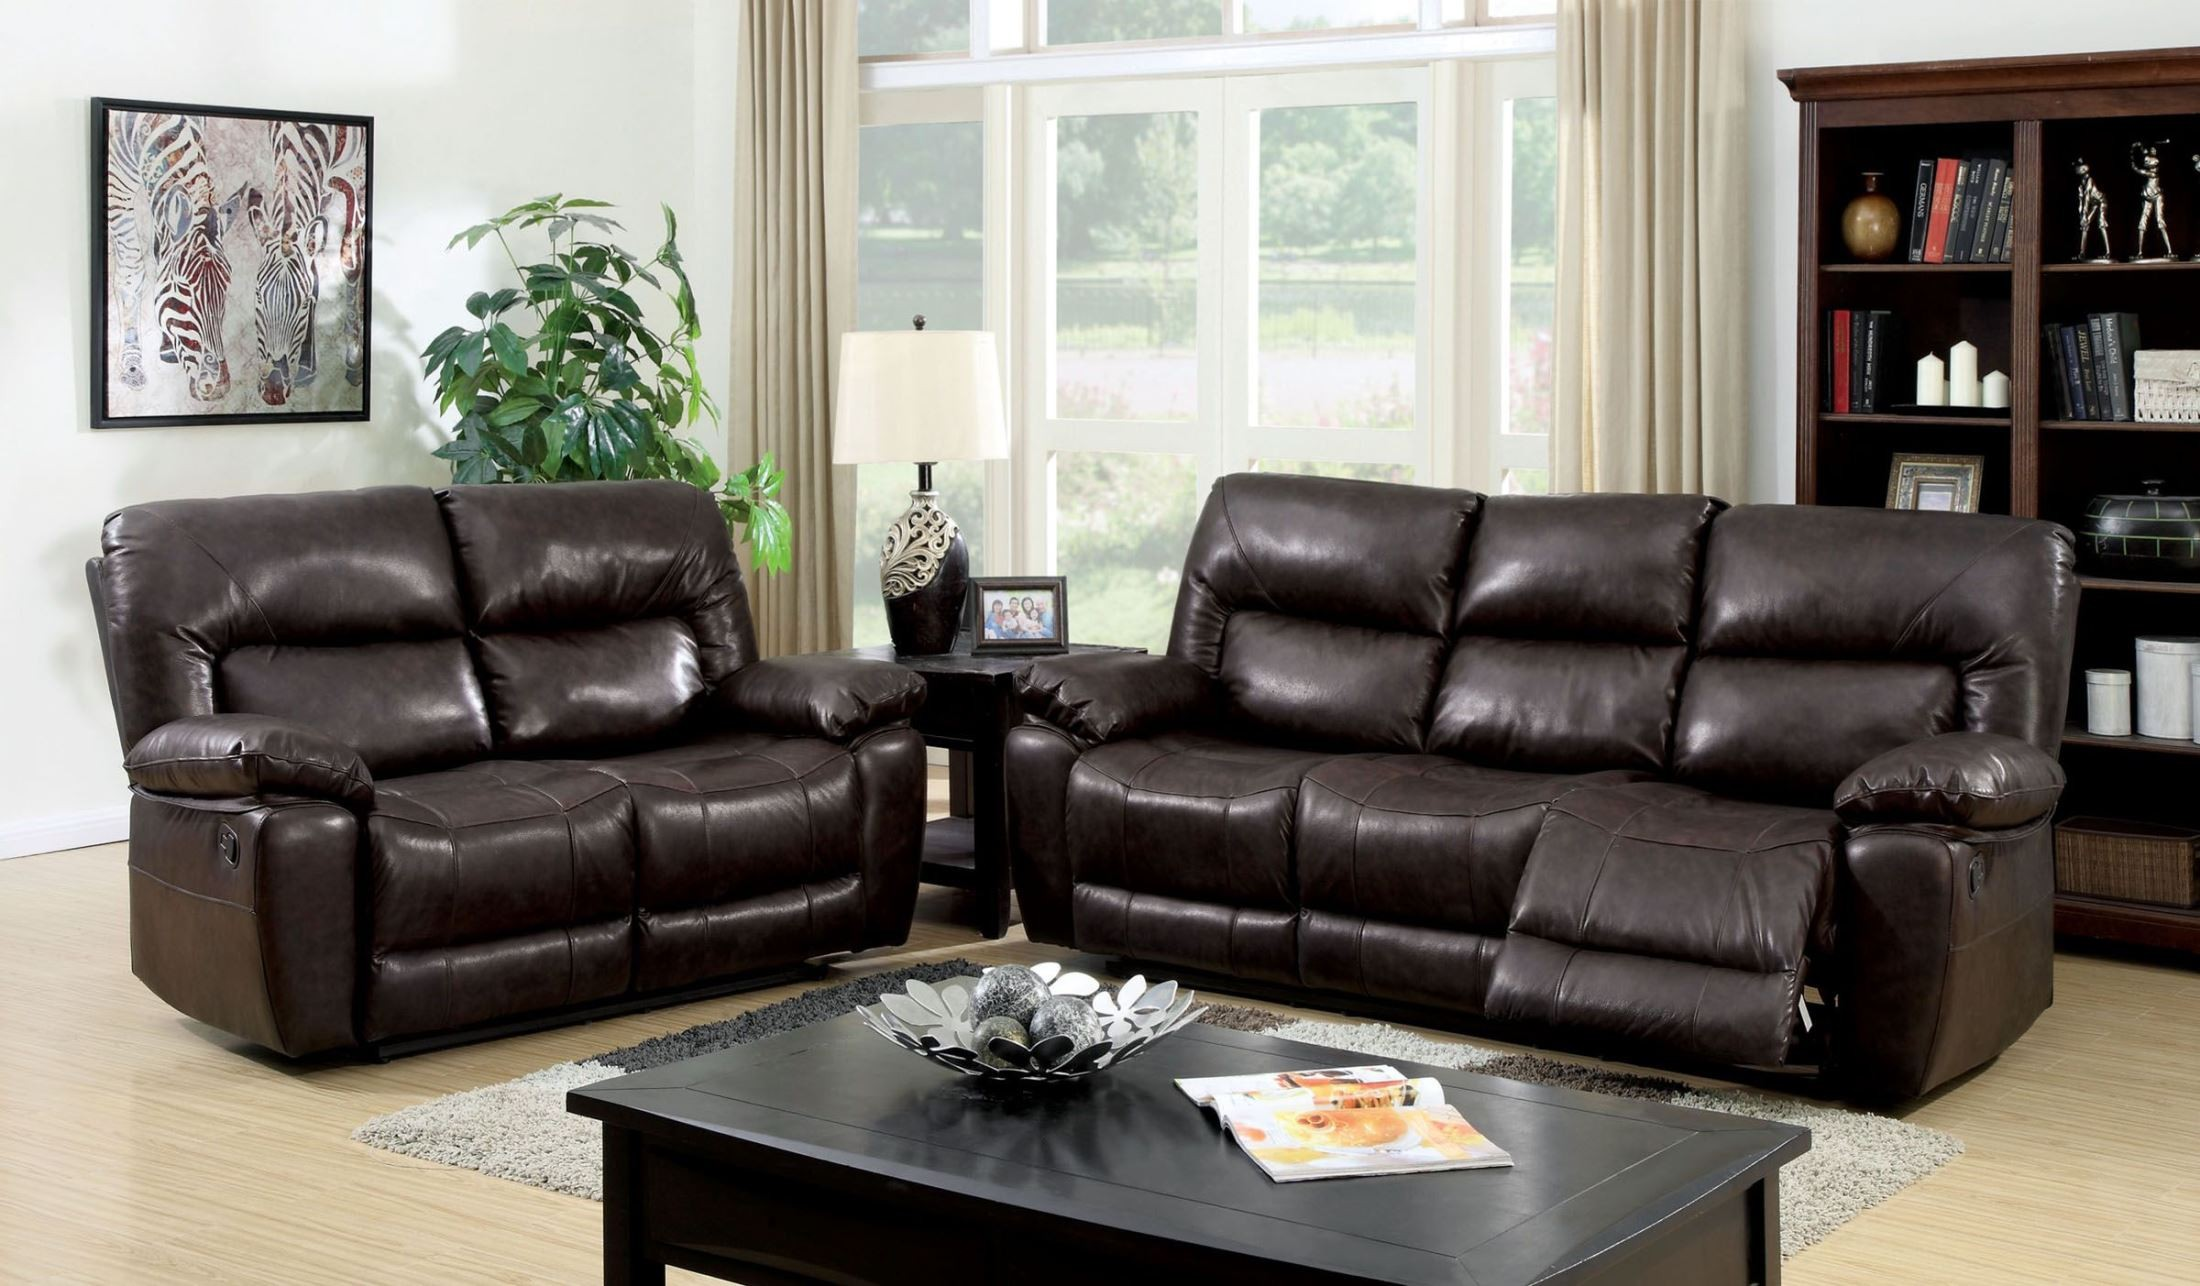 Stallion Top Grain Leather Match Reclining Living Room Set From Furniture Of America Cm6319 Sf